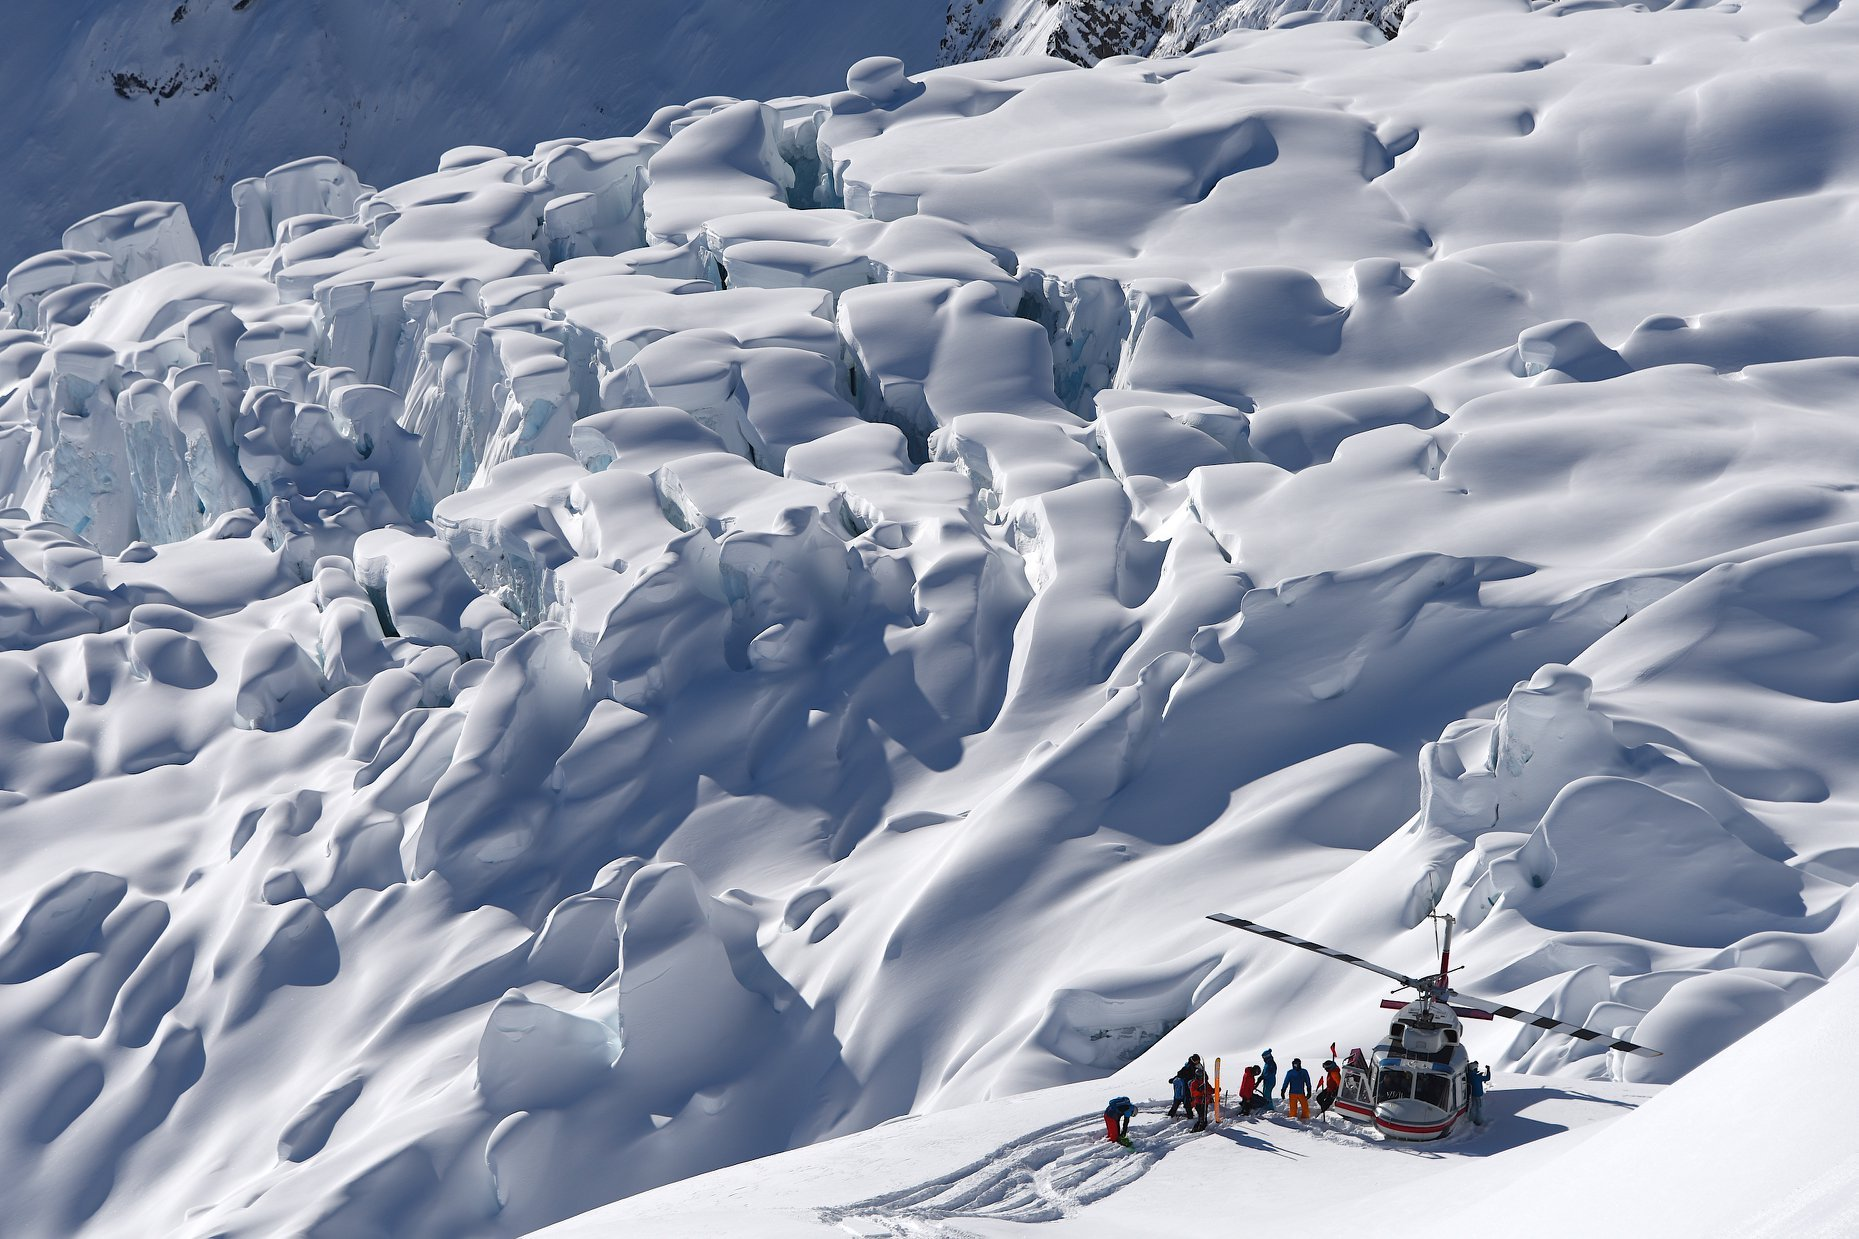 Heli skiing in Canada's backcountry